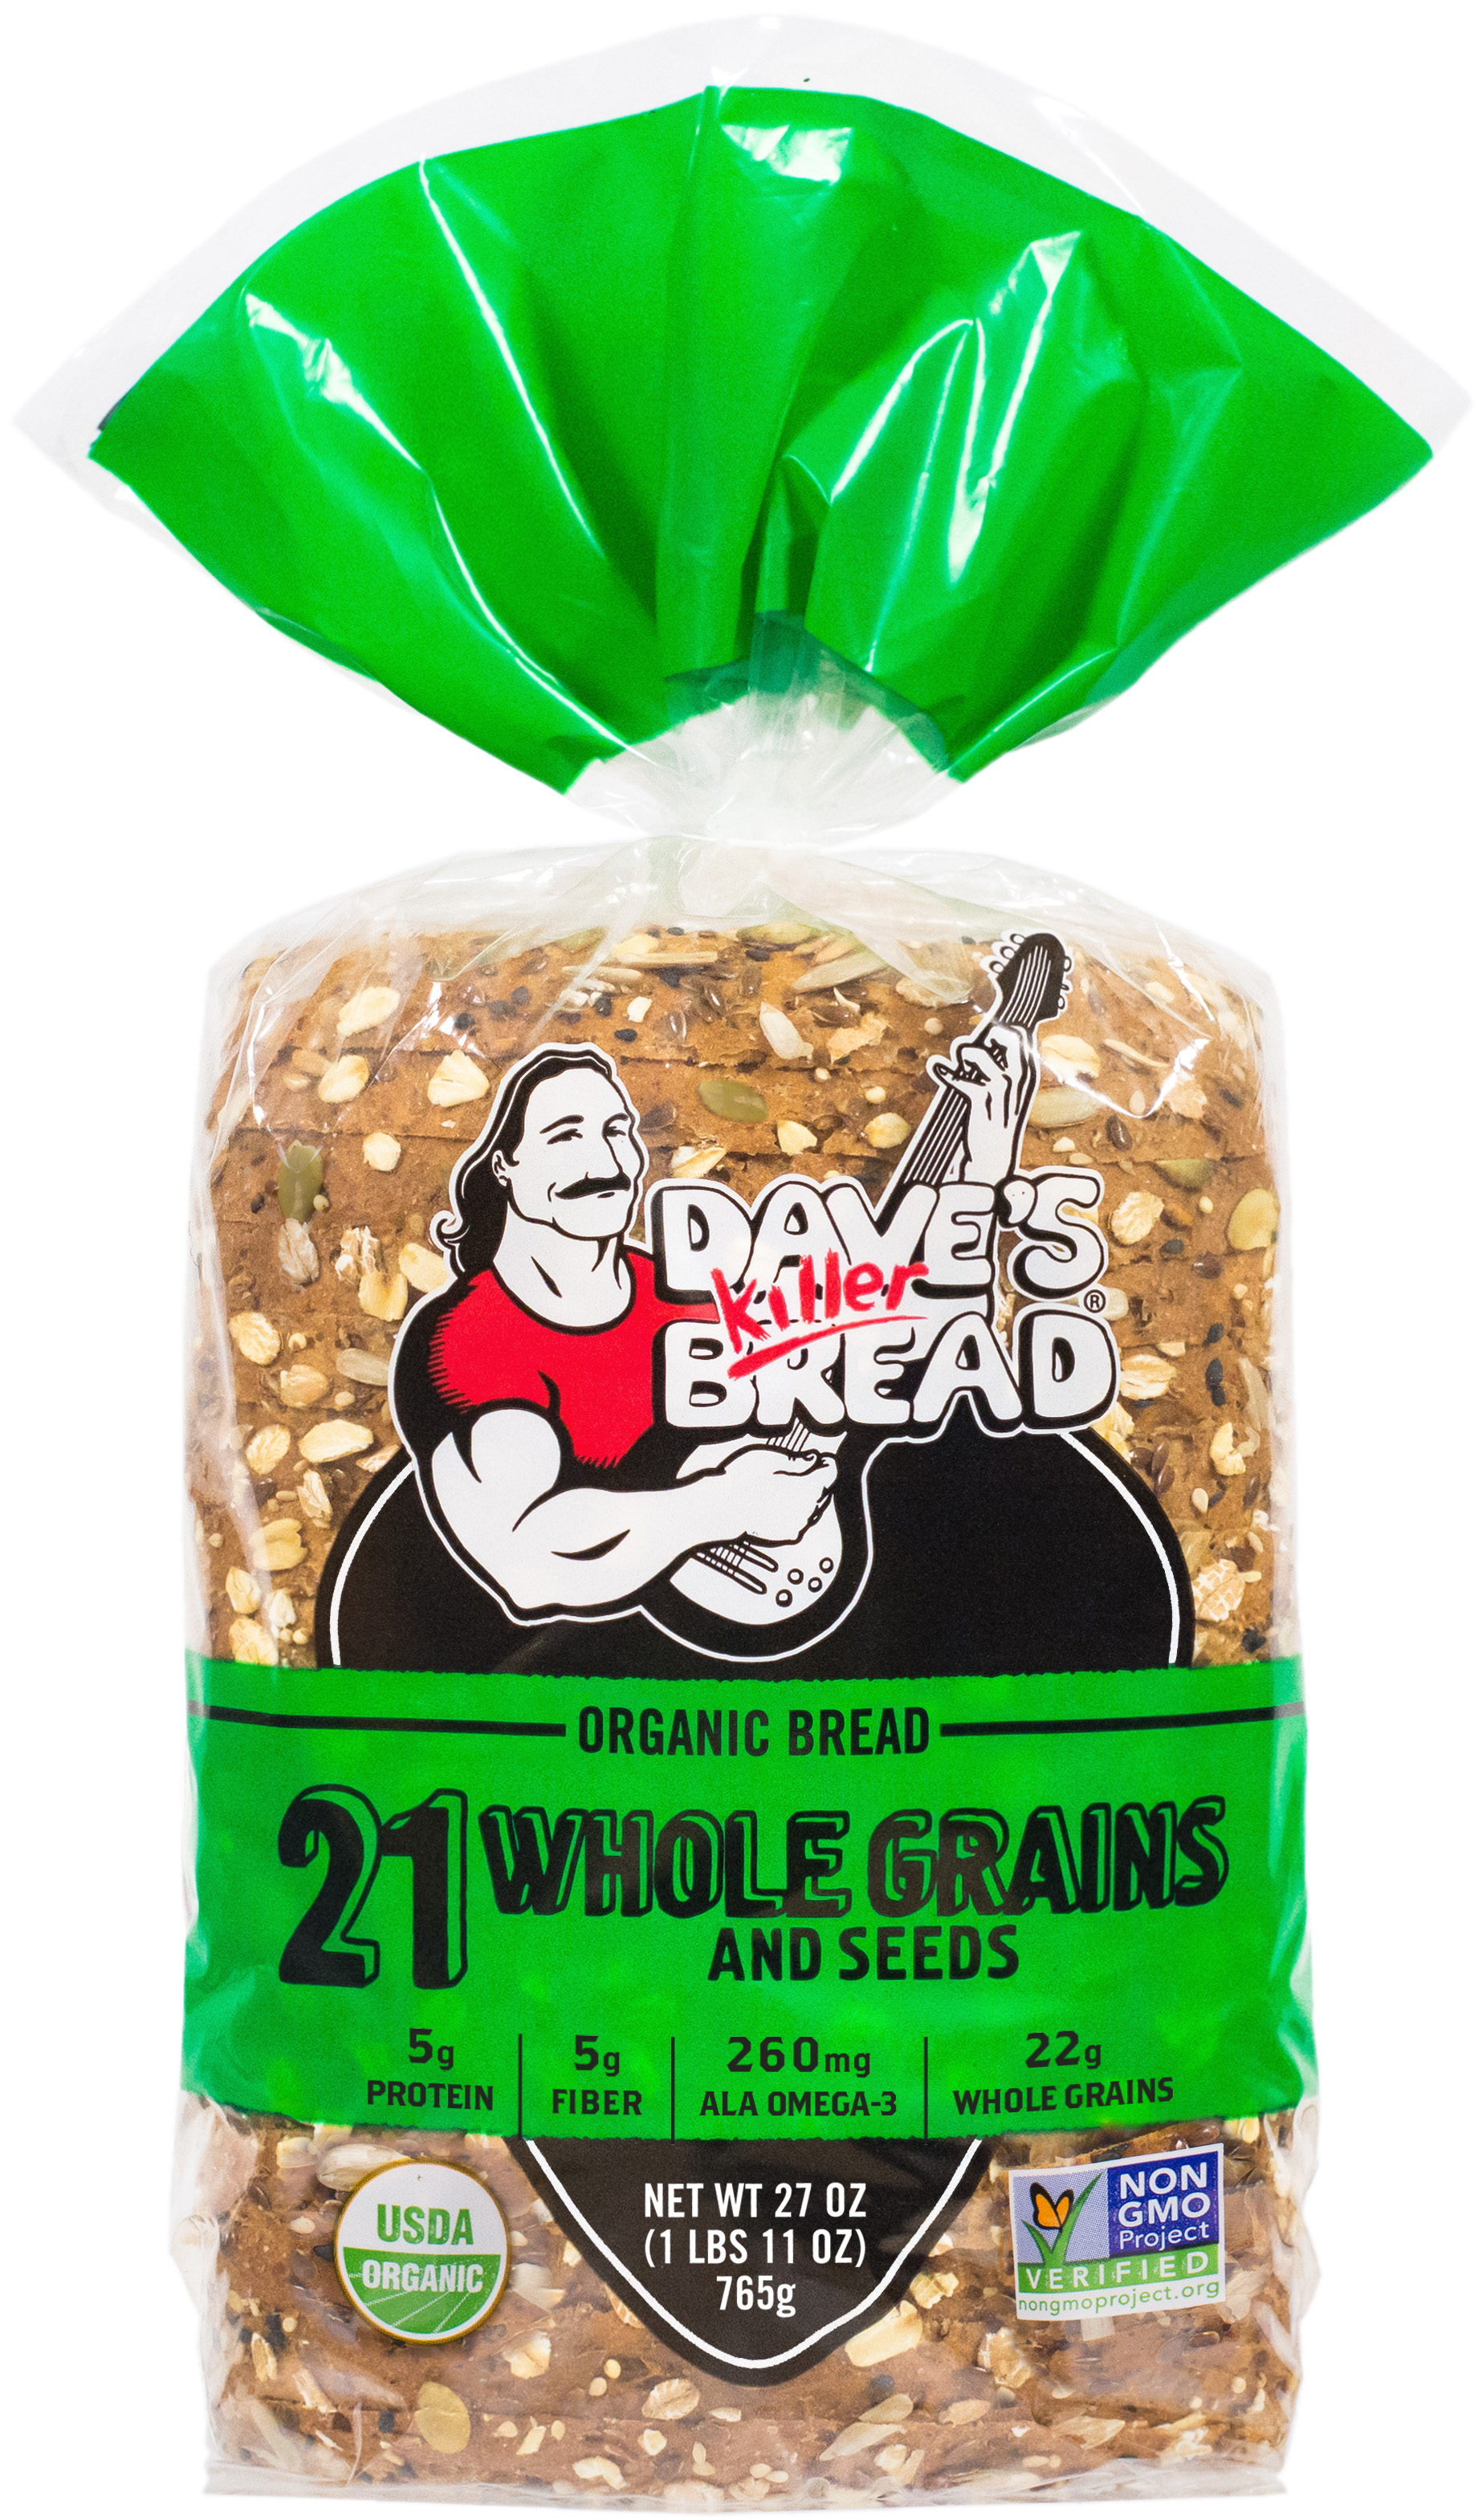 21 Whole Grains and Seeds